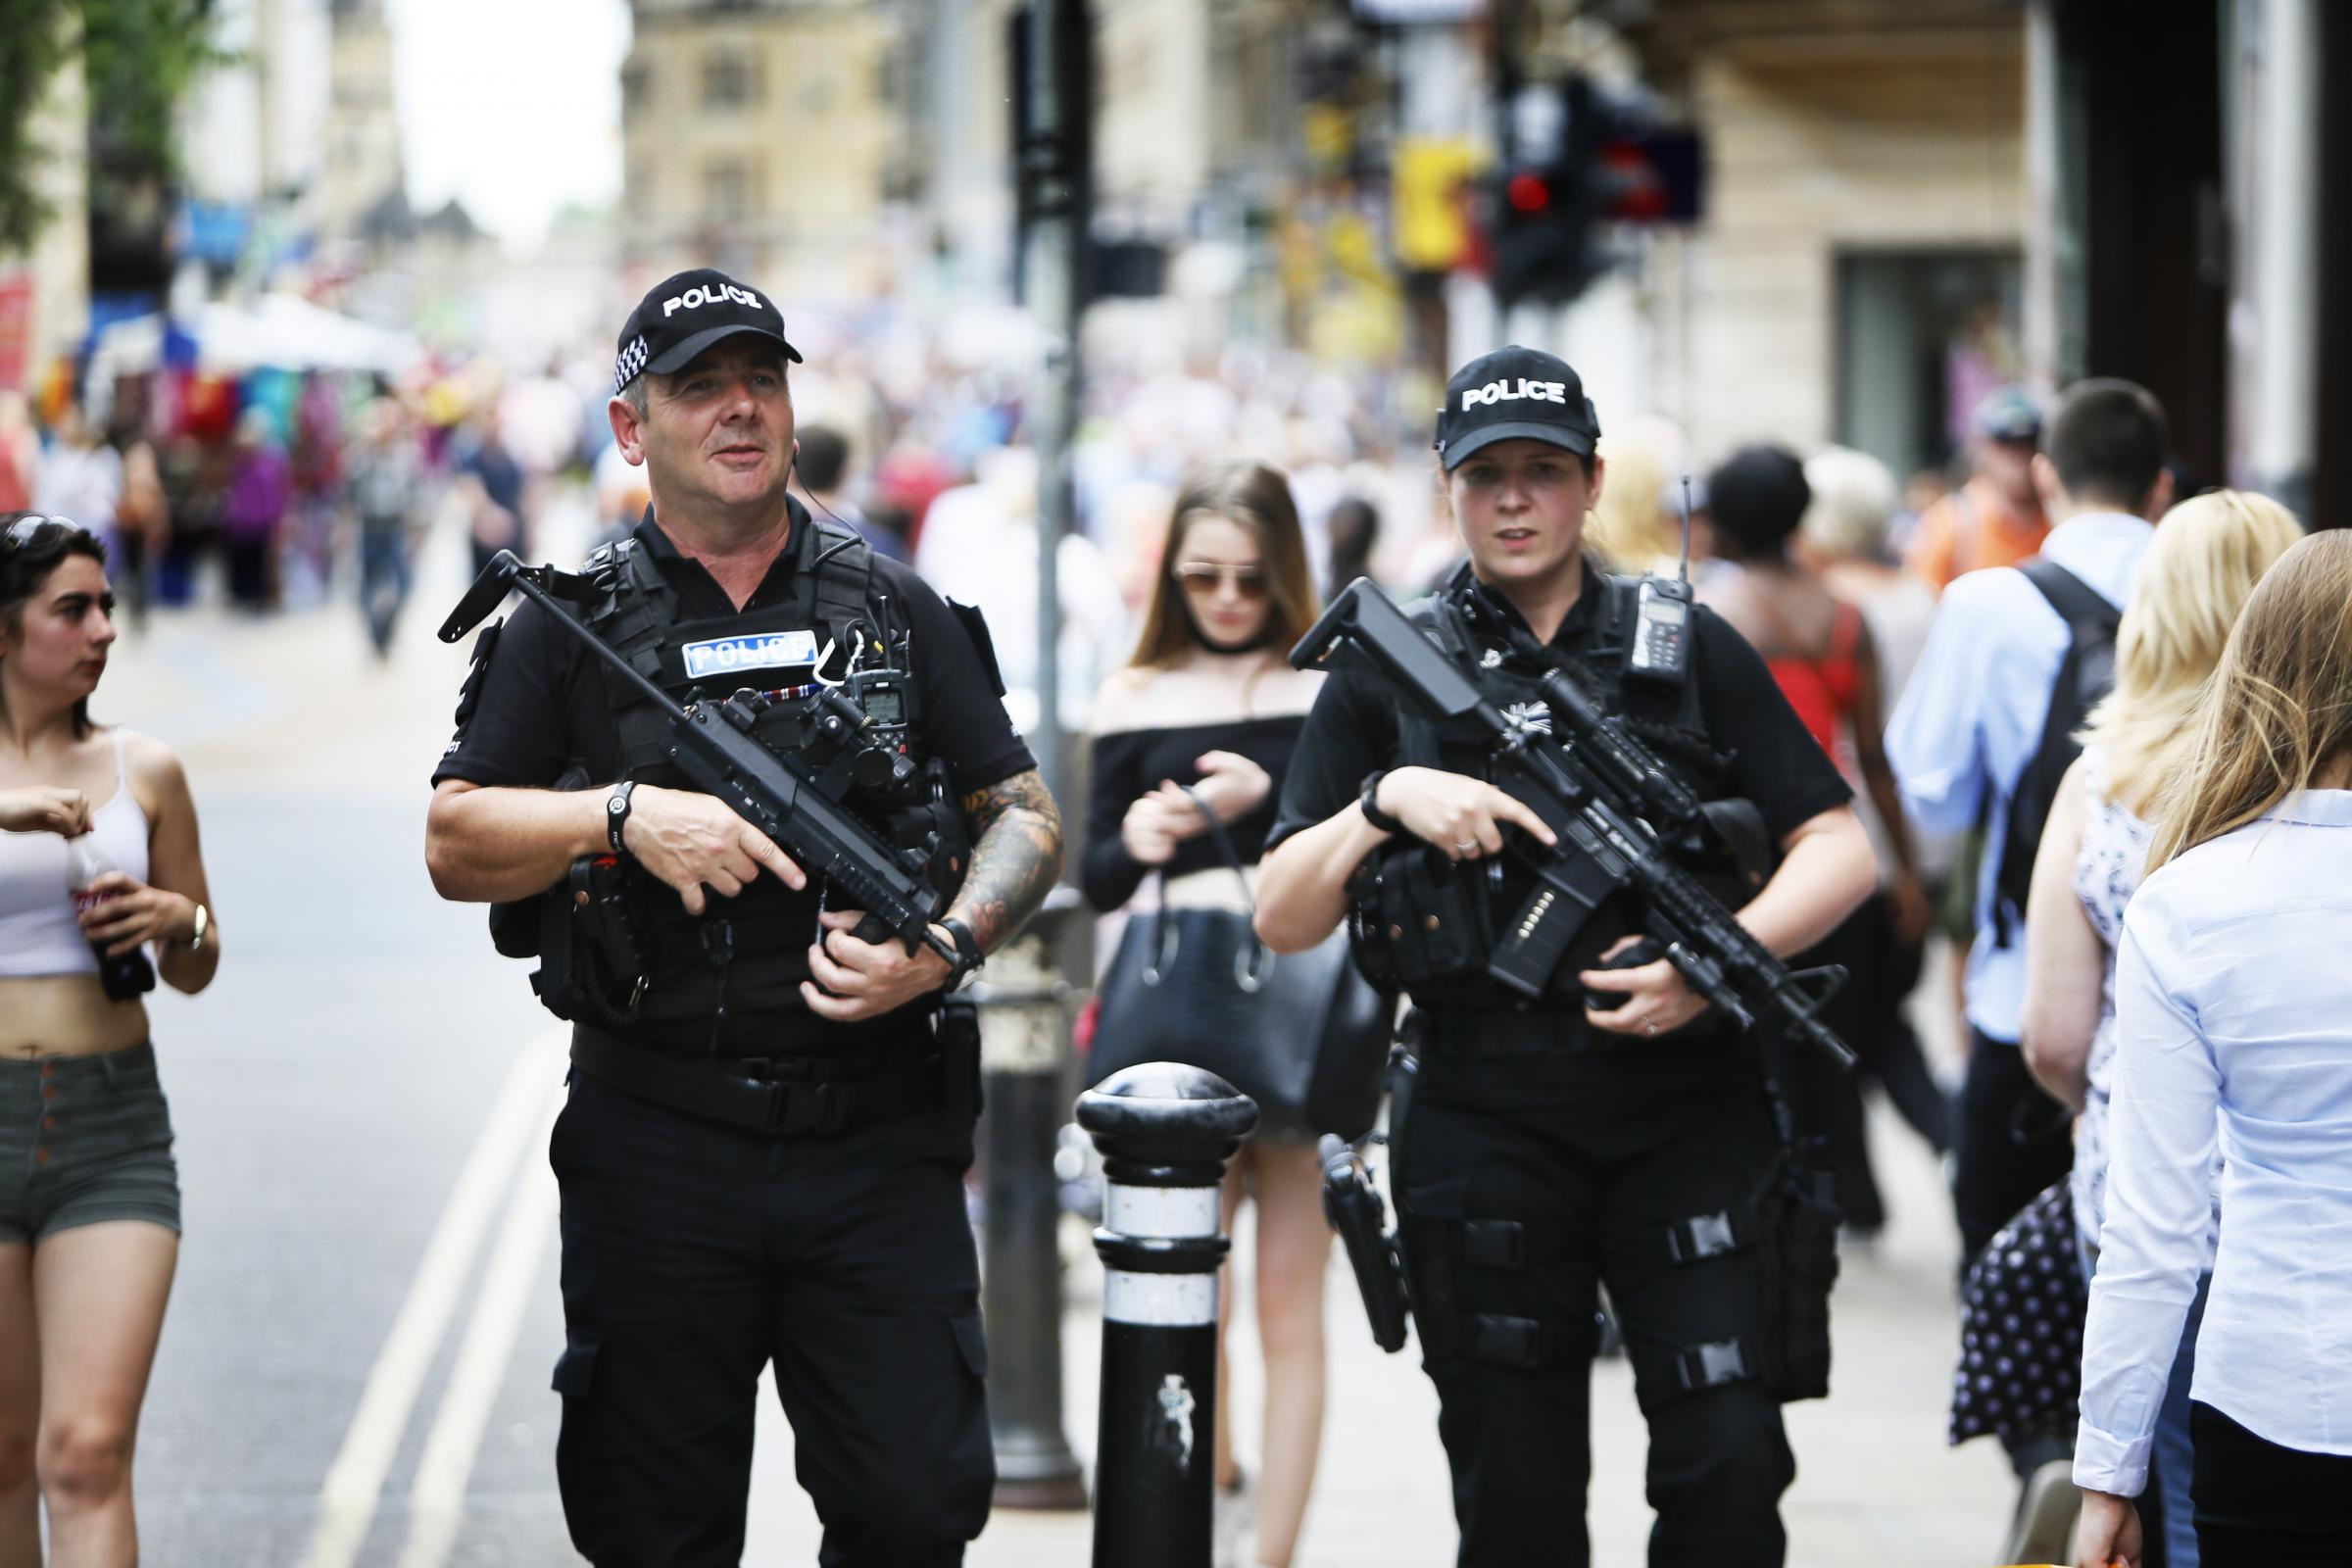 Armed police on the streets of Oxford last year. Picture: Ed Nix